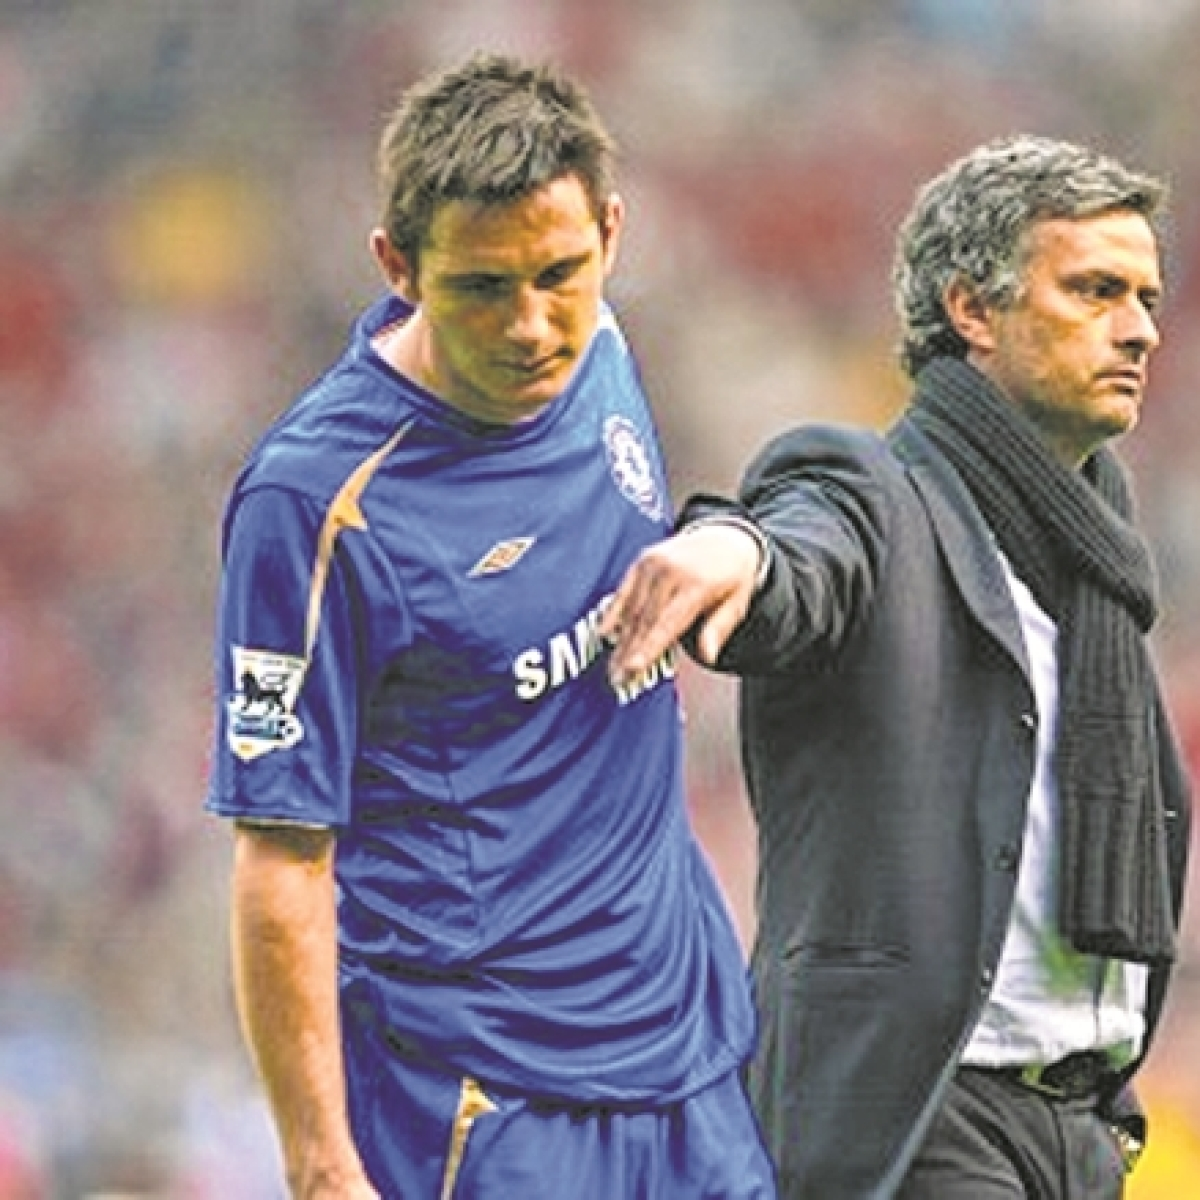 EPL: Frank Lampard locks horns with former boss Jose Mourinho